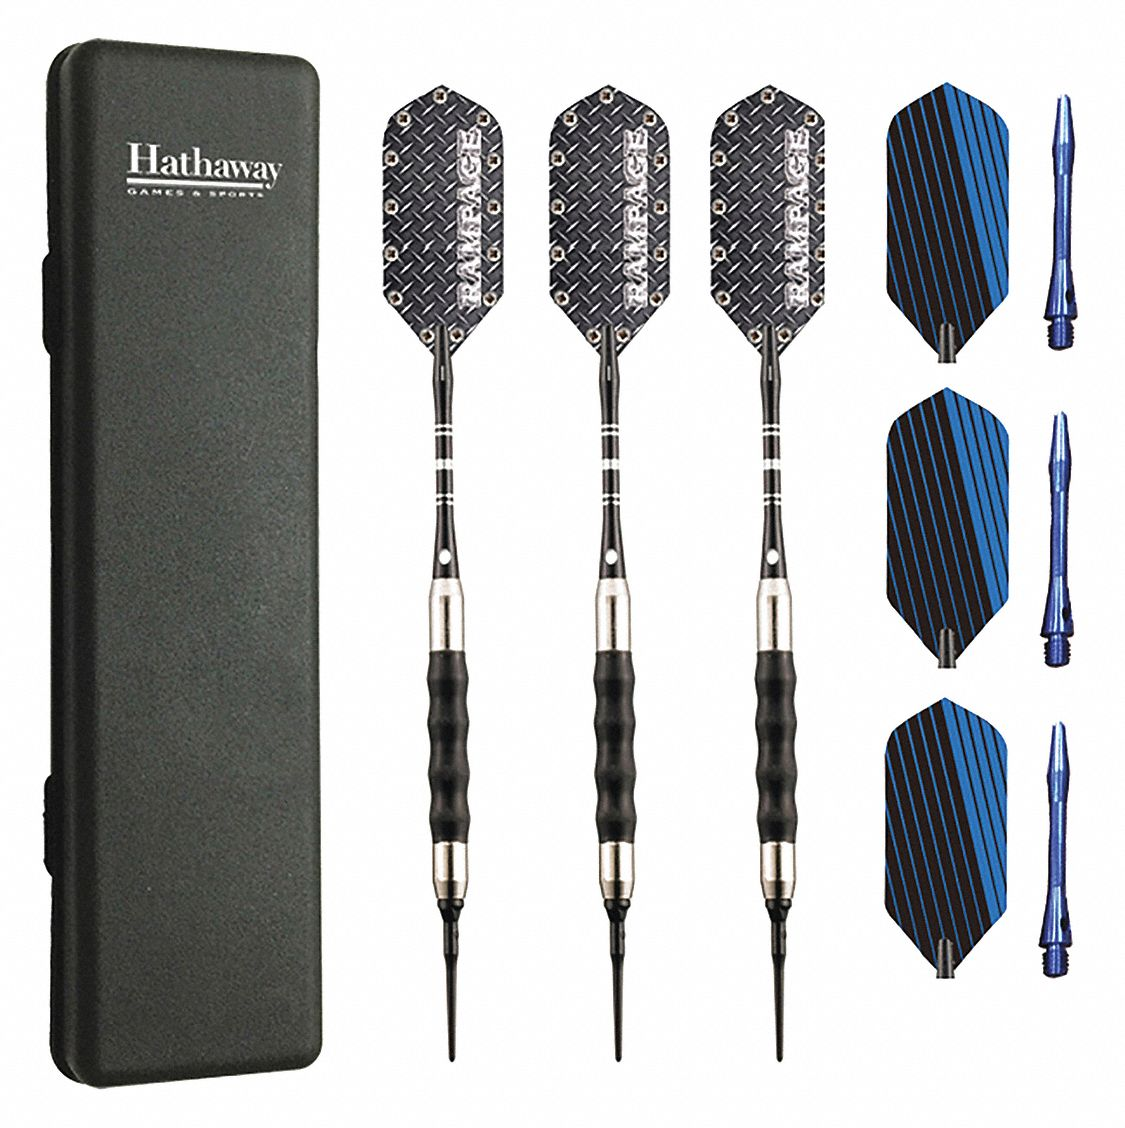 Tip Darts; For Use With Electronic Dartboards